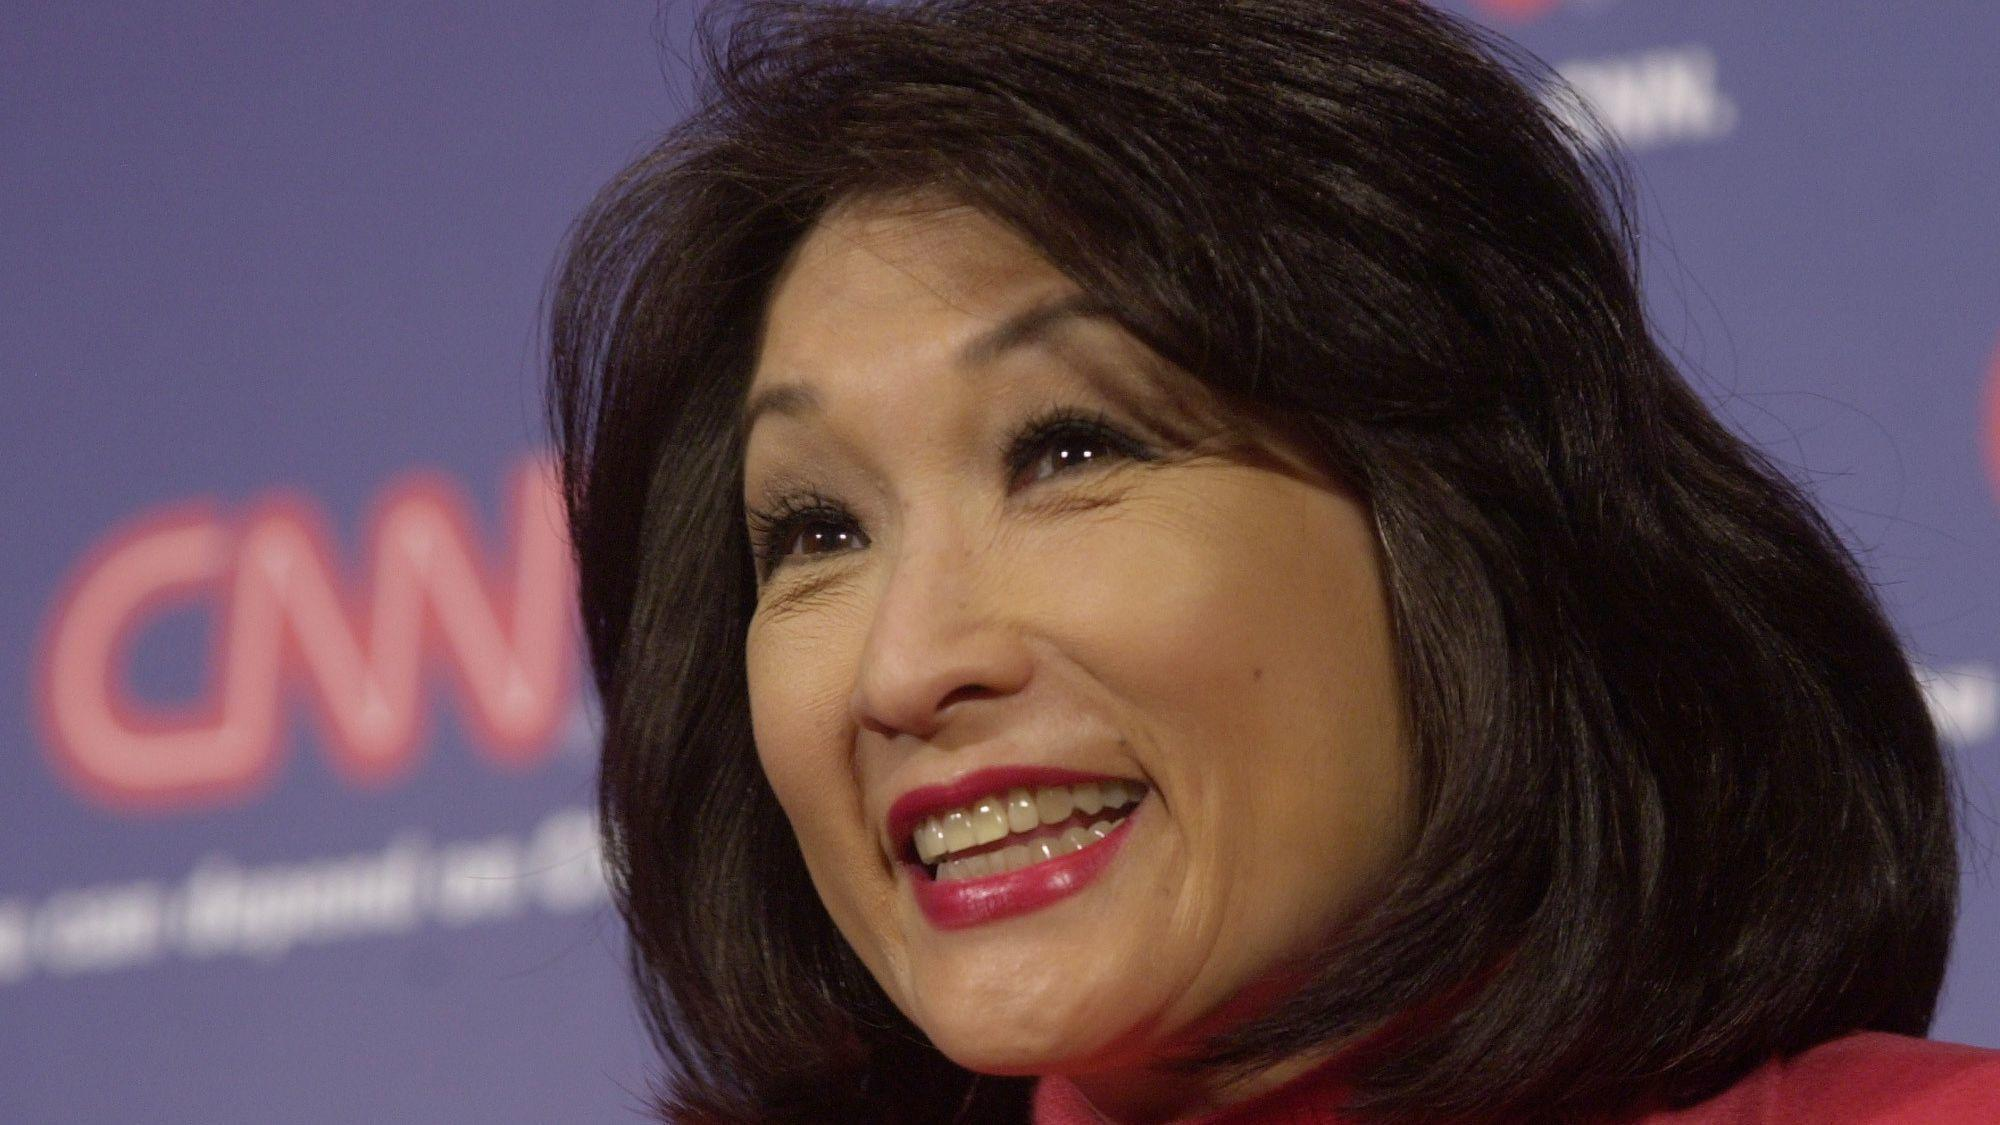 connie chung u0026 39 s essay about sexual assault is a reminder that truth and courage don u0026 39 t bow to